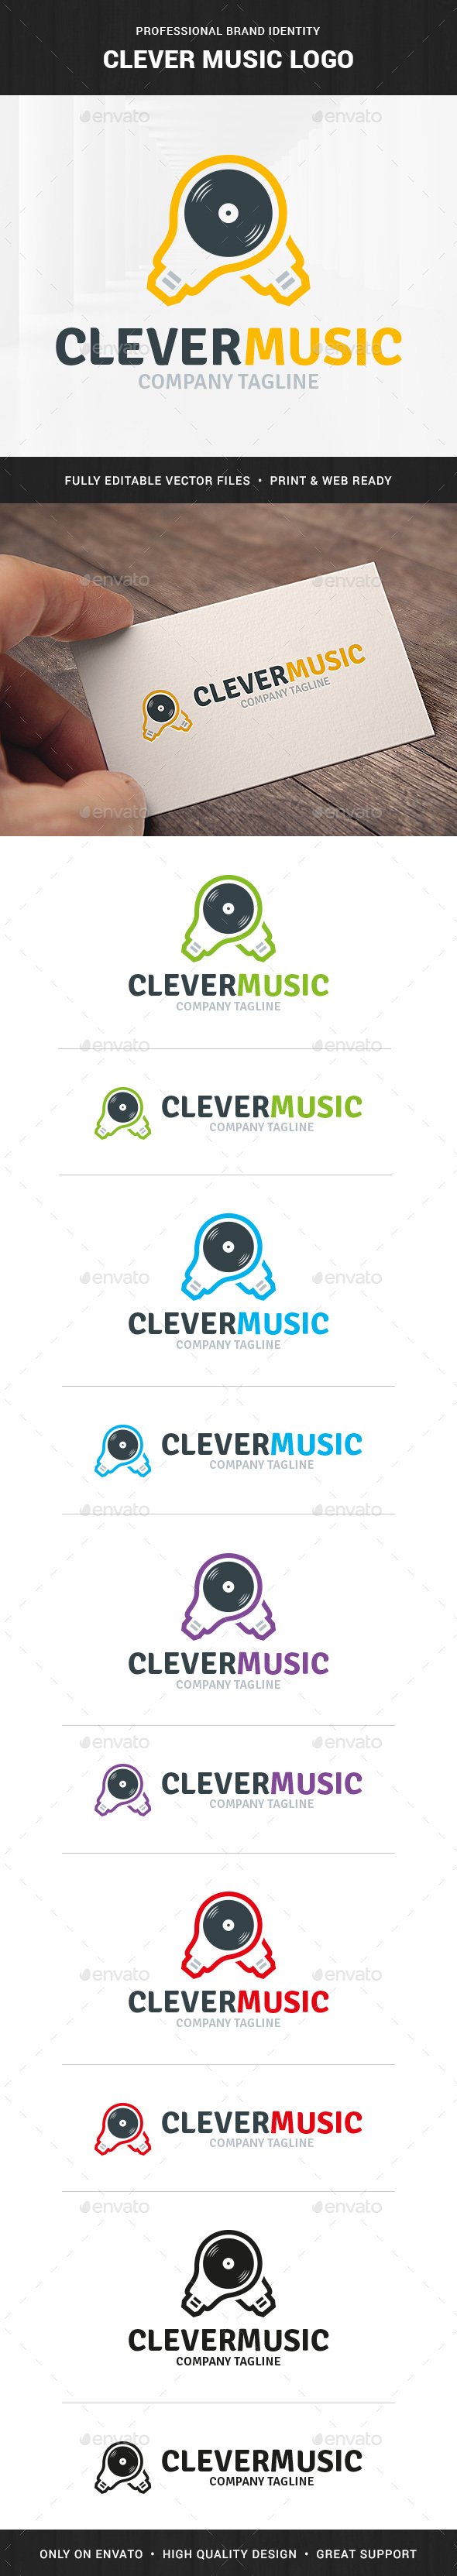 Clever Music Logo Template